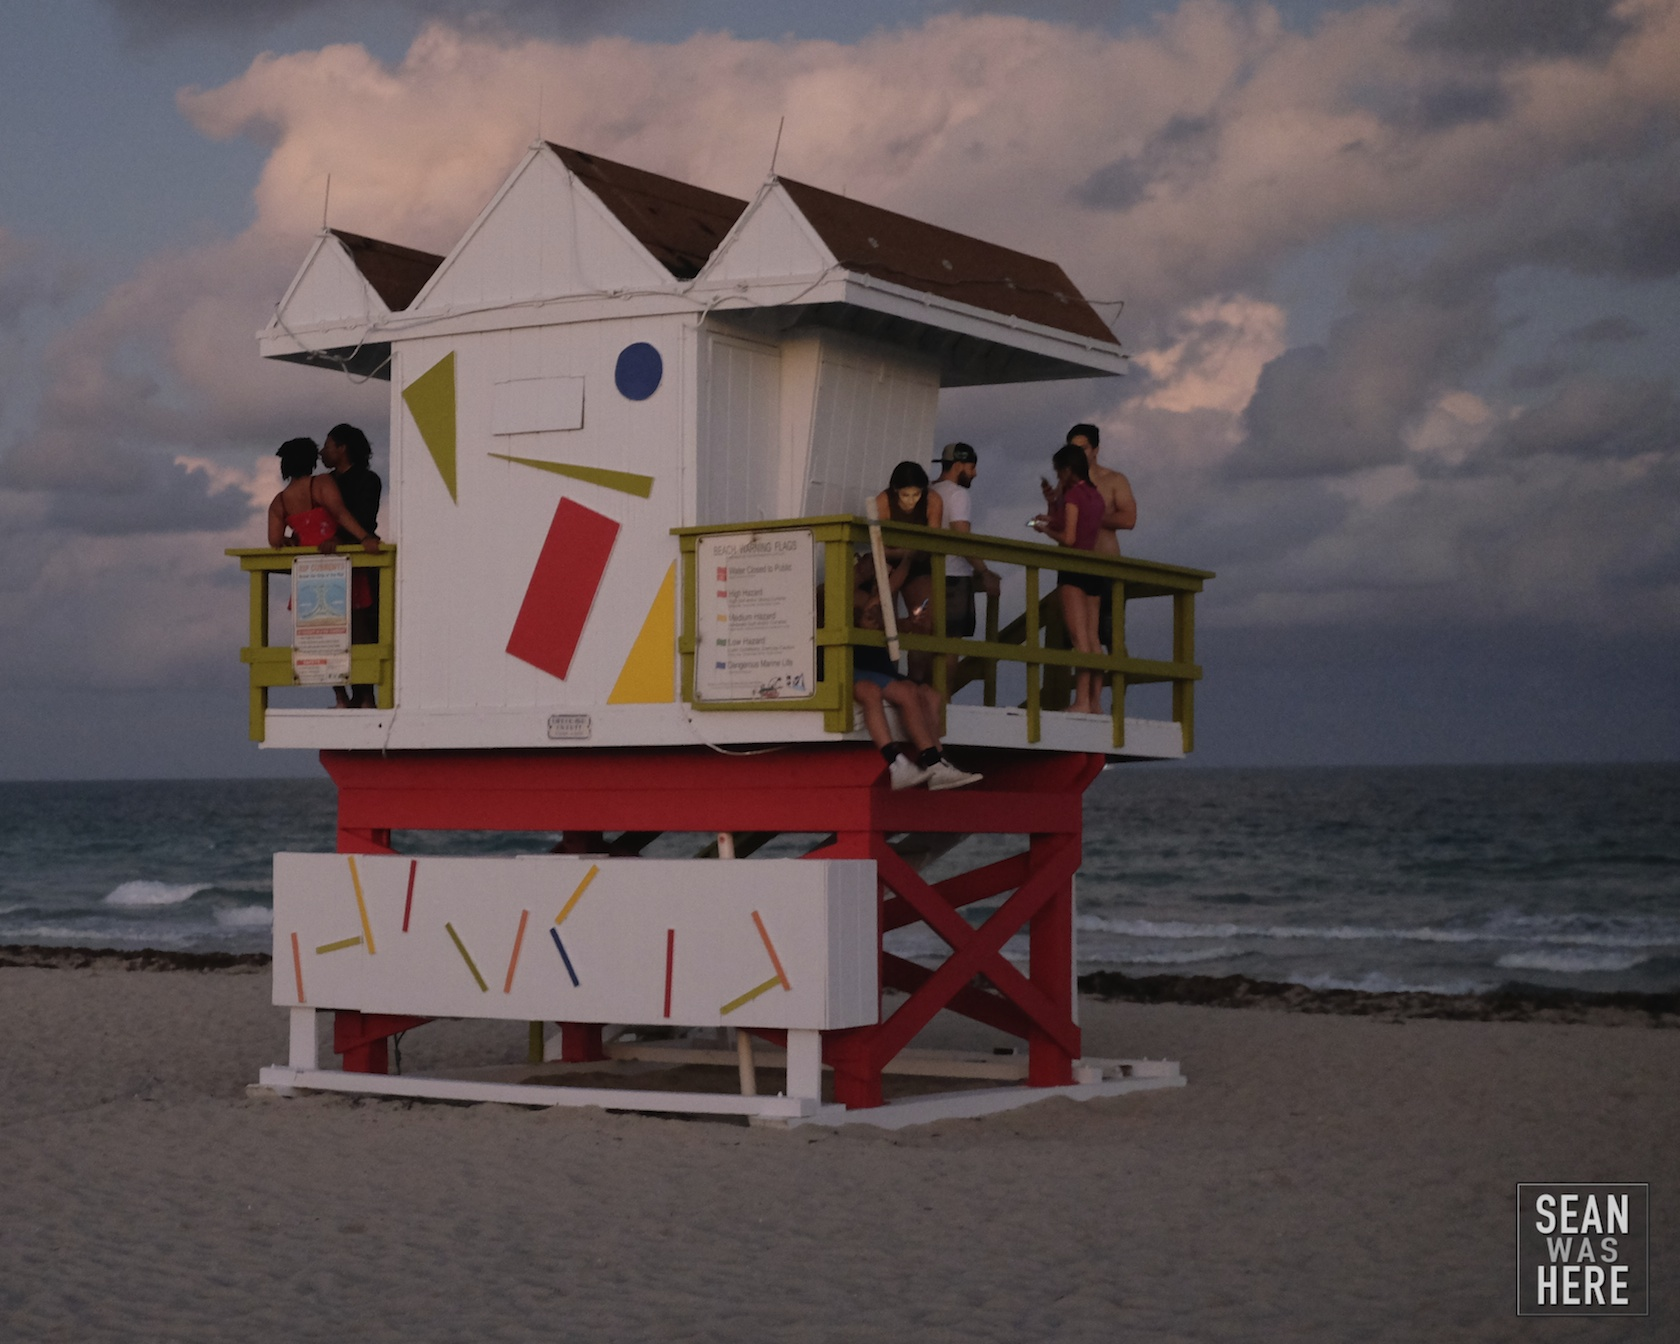 Miami Beach Jetty 6th Street Lifeguard Stand